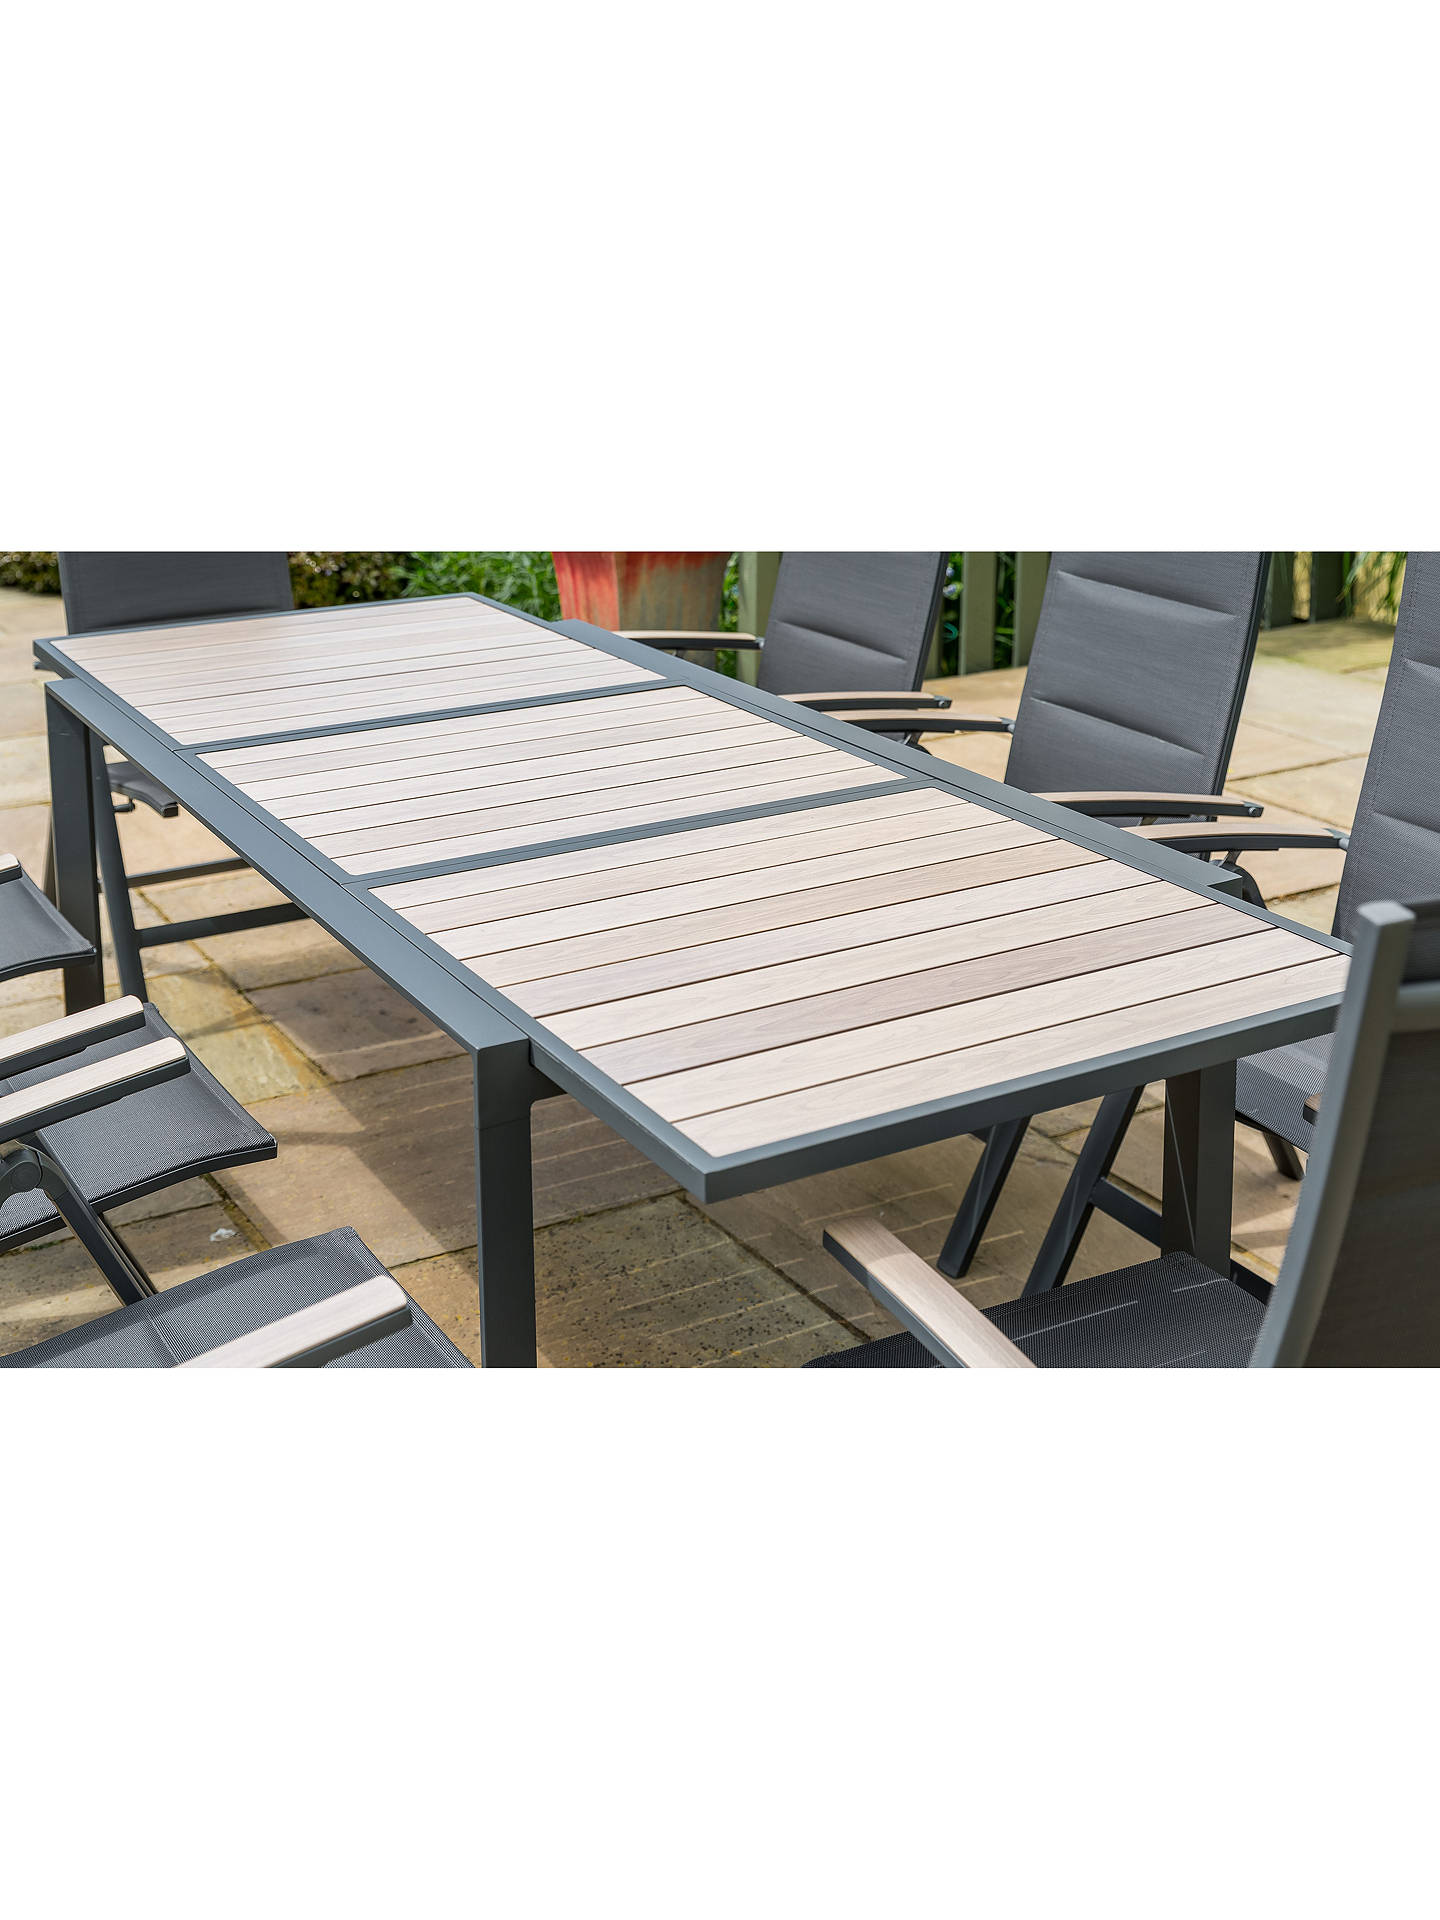 Lg Outdoor Milan 6 Seat Extendable Garden Table And Chairs Dining Set Grey